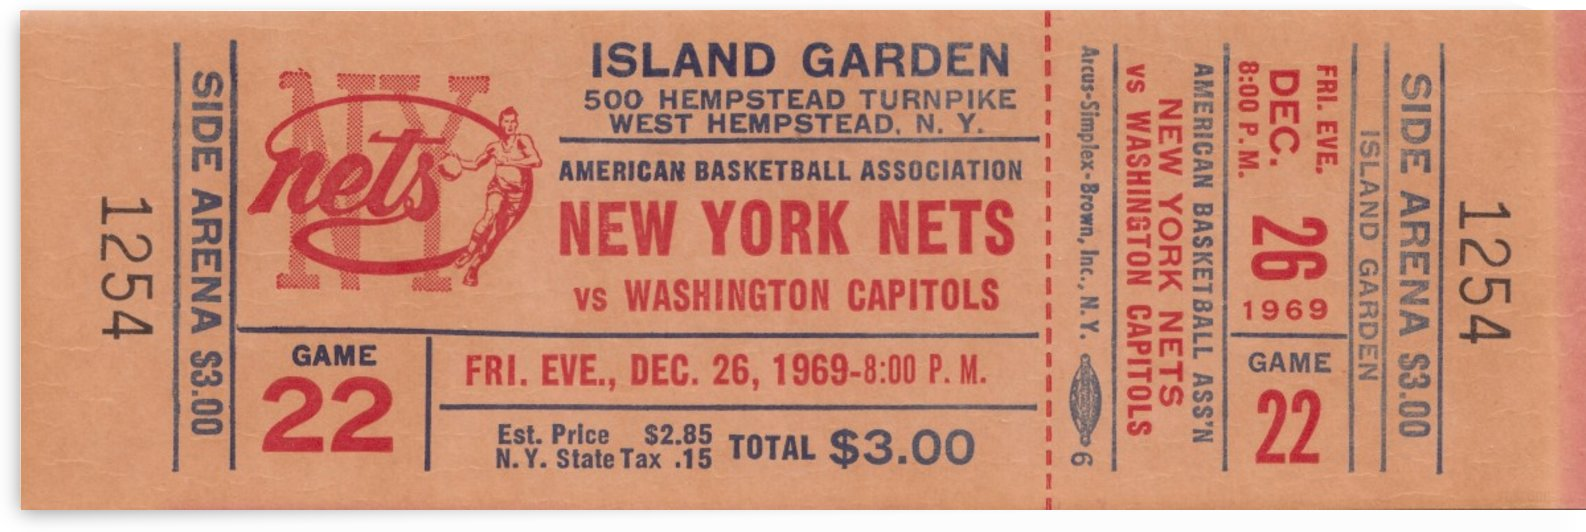 1969 ABA Basketball Season New York Nets vs. Washington Capitols Island Garden Ticket Stub Art by Row One Brand